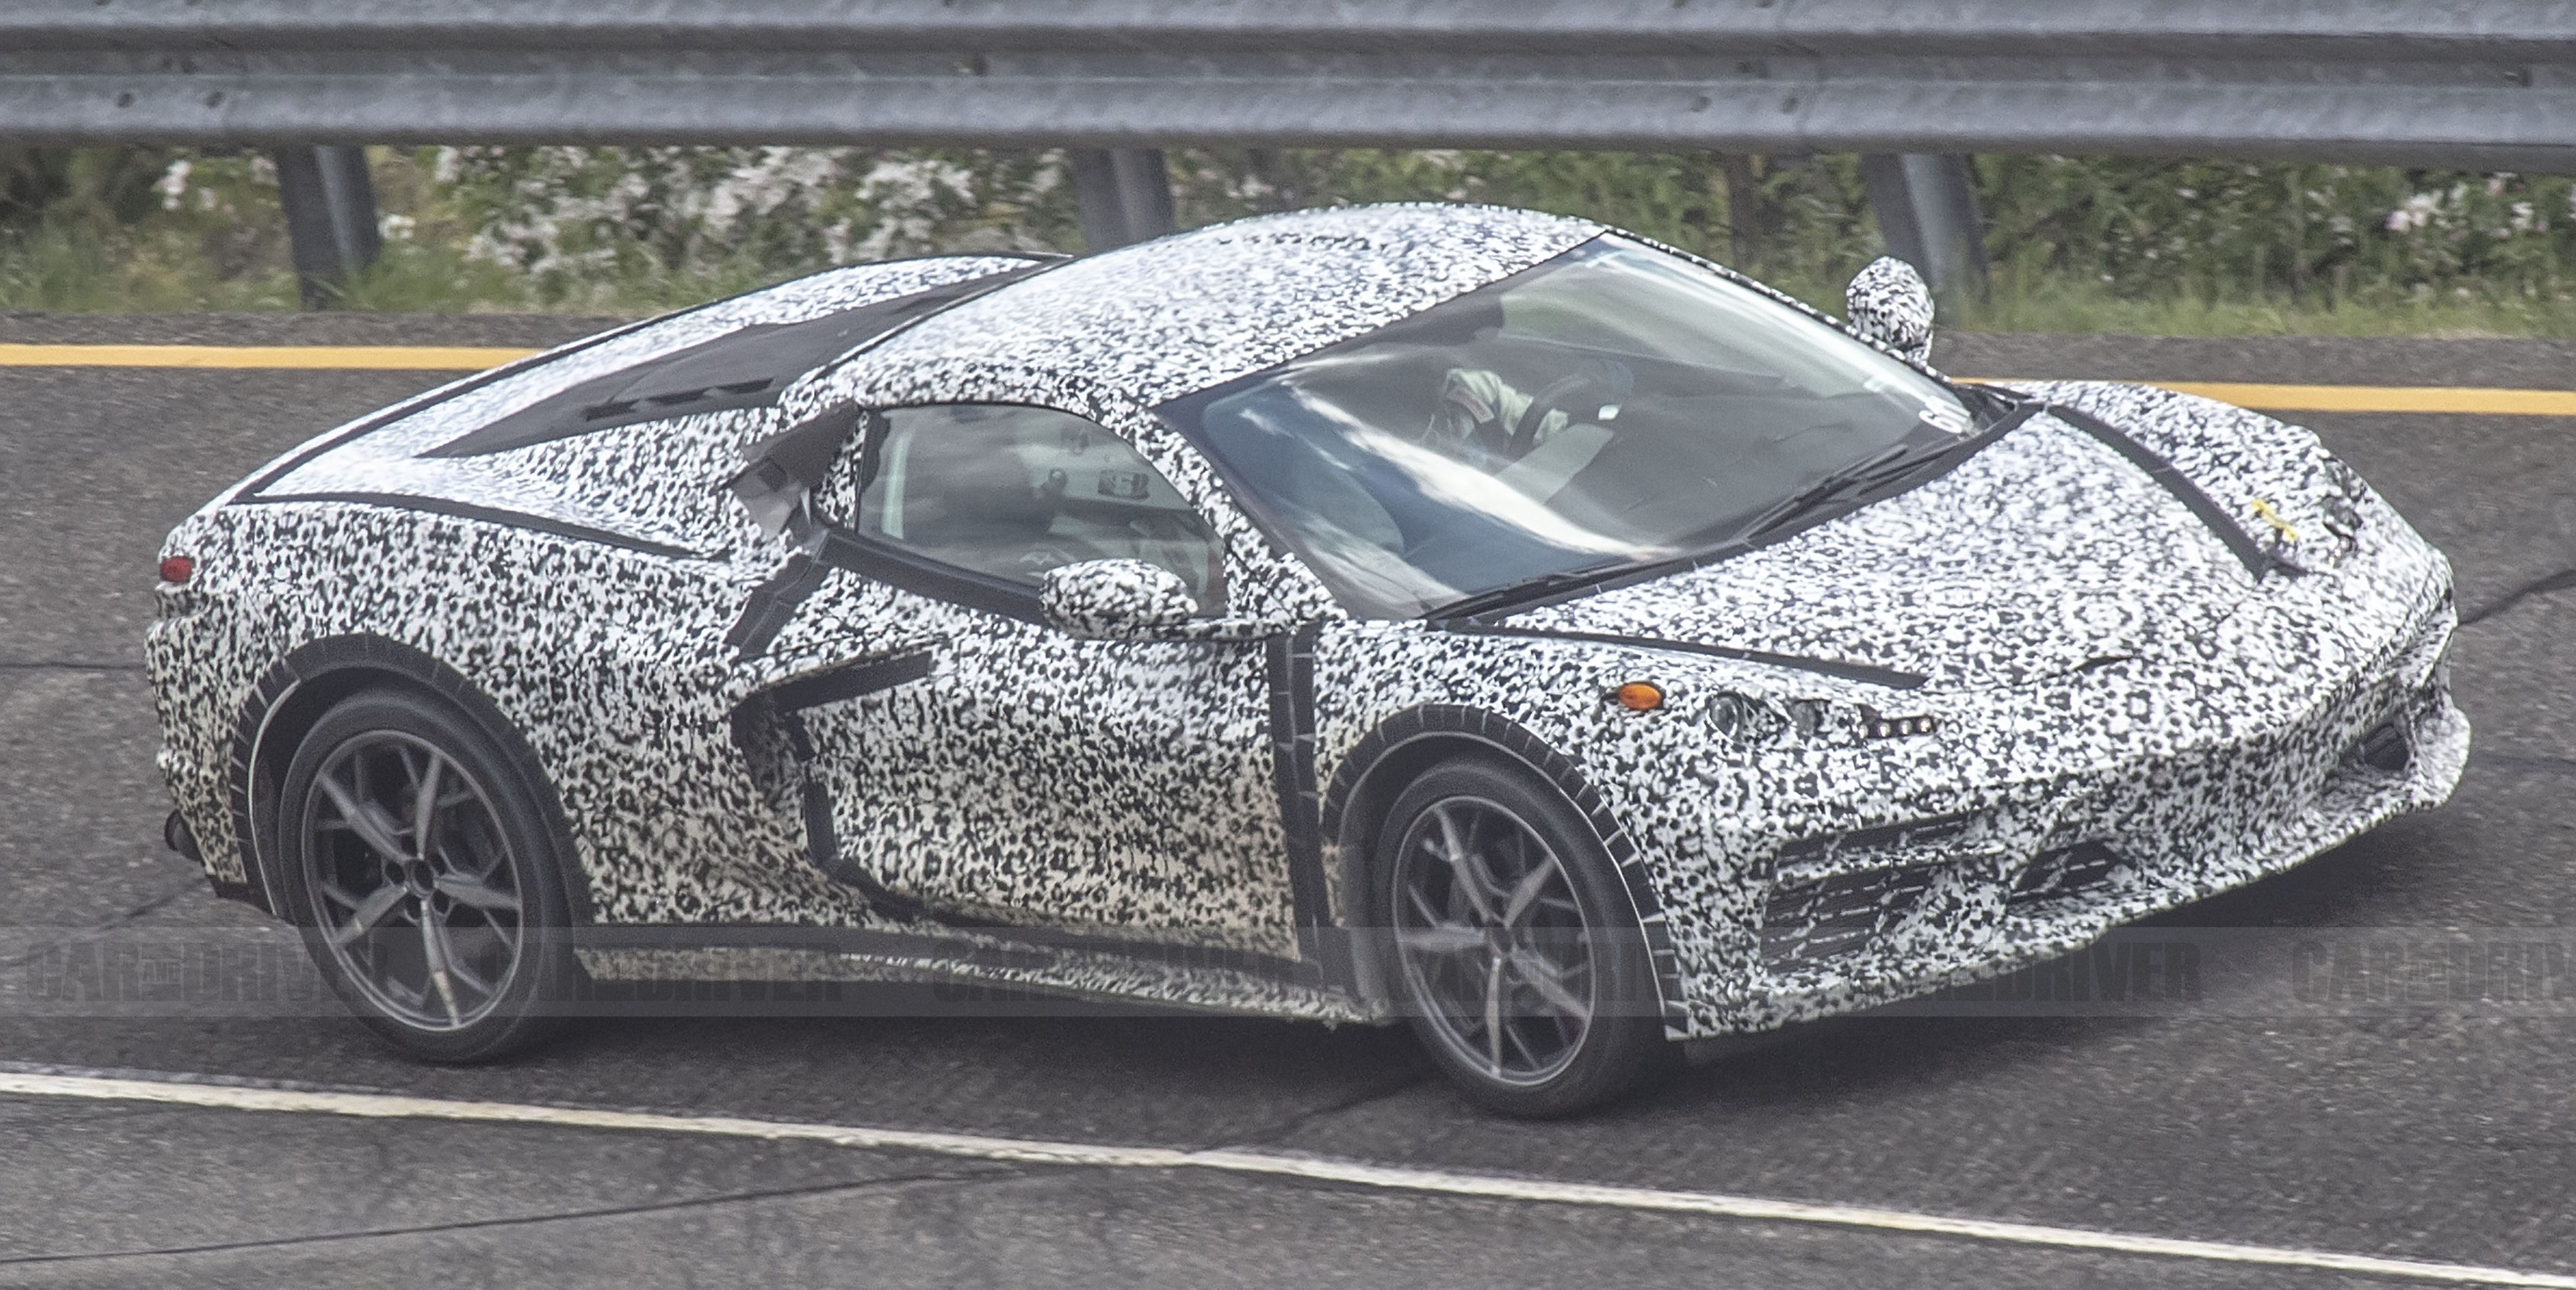 Mid-Engined Corvette Spied without Rear Wing